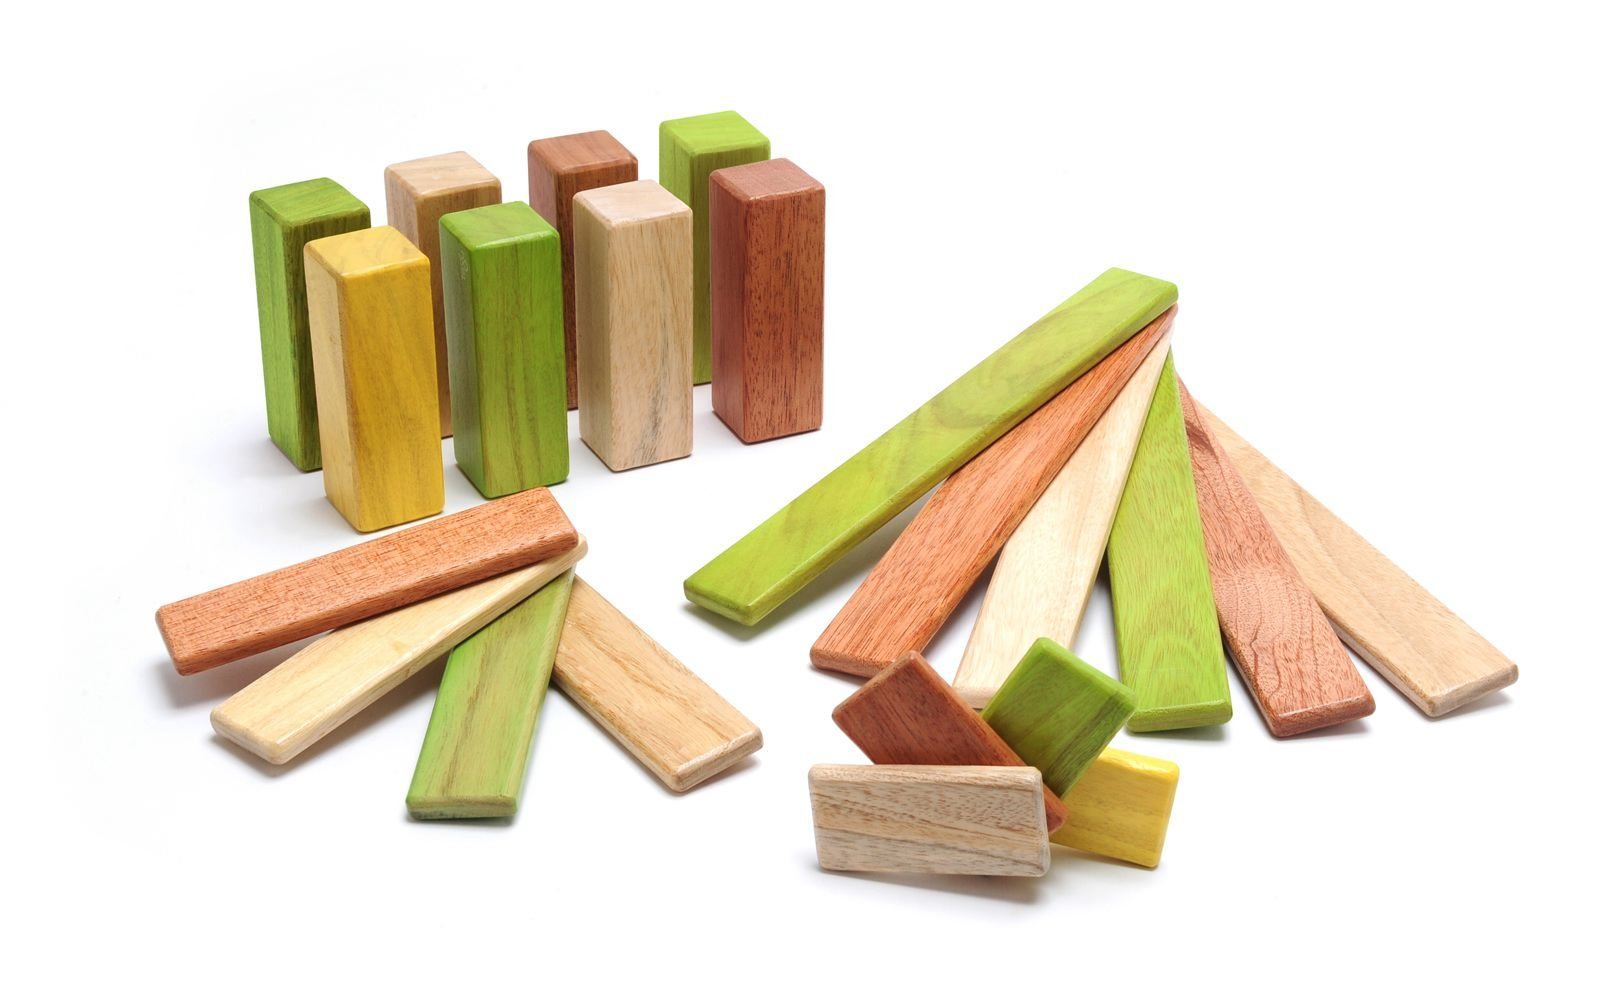 22 Piece Tegu Endeavor Magnetic Wooden Block Set, Jungle